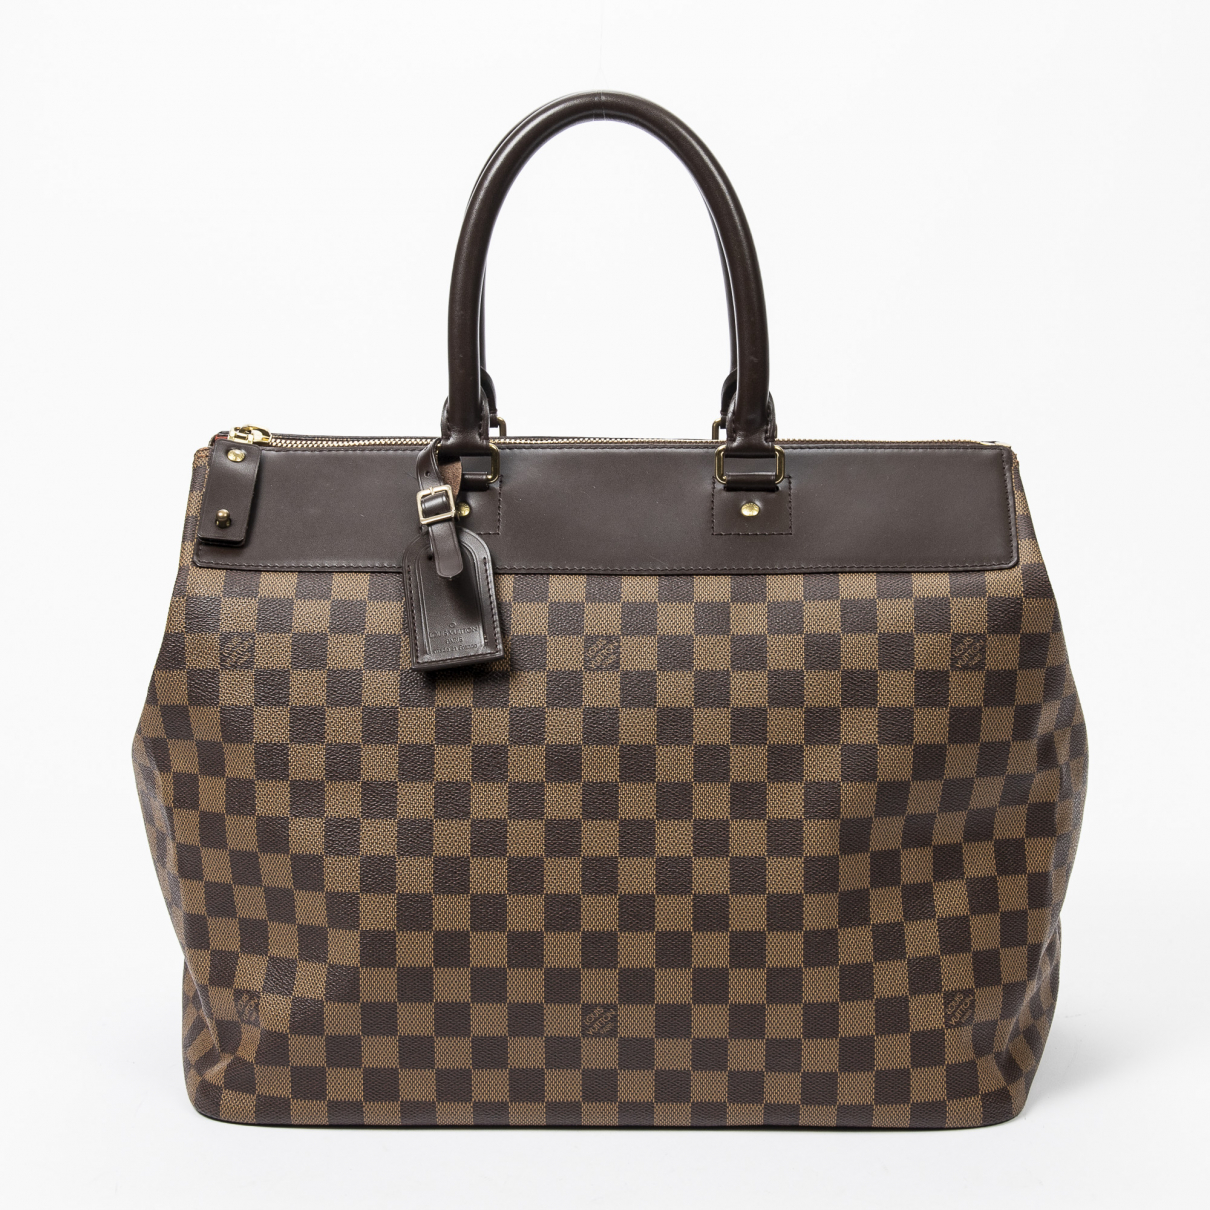 Louis Vuitton Greenwich Brown Leather handbag for Women \N